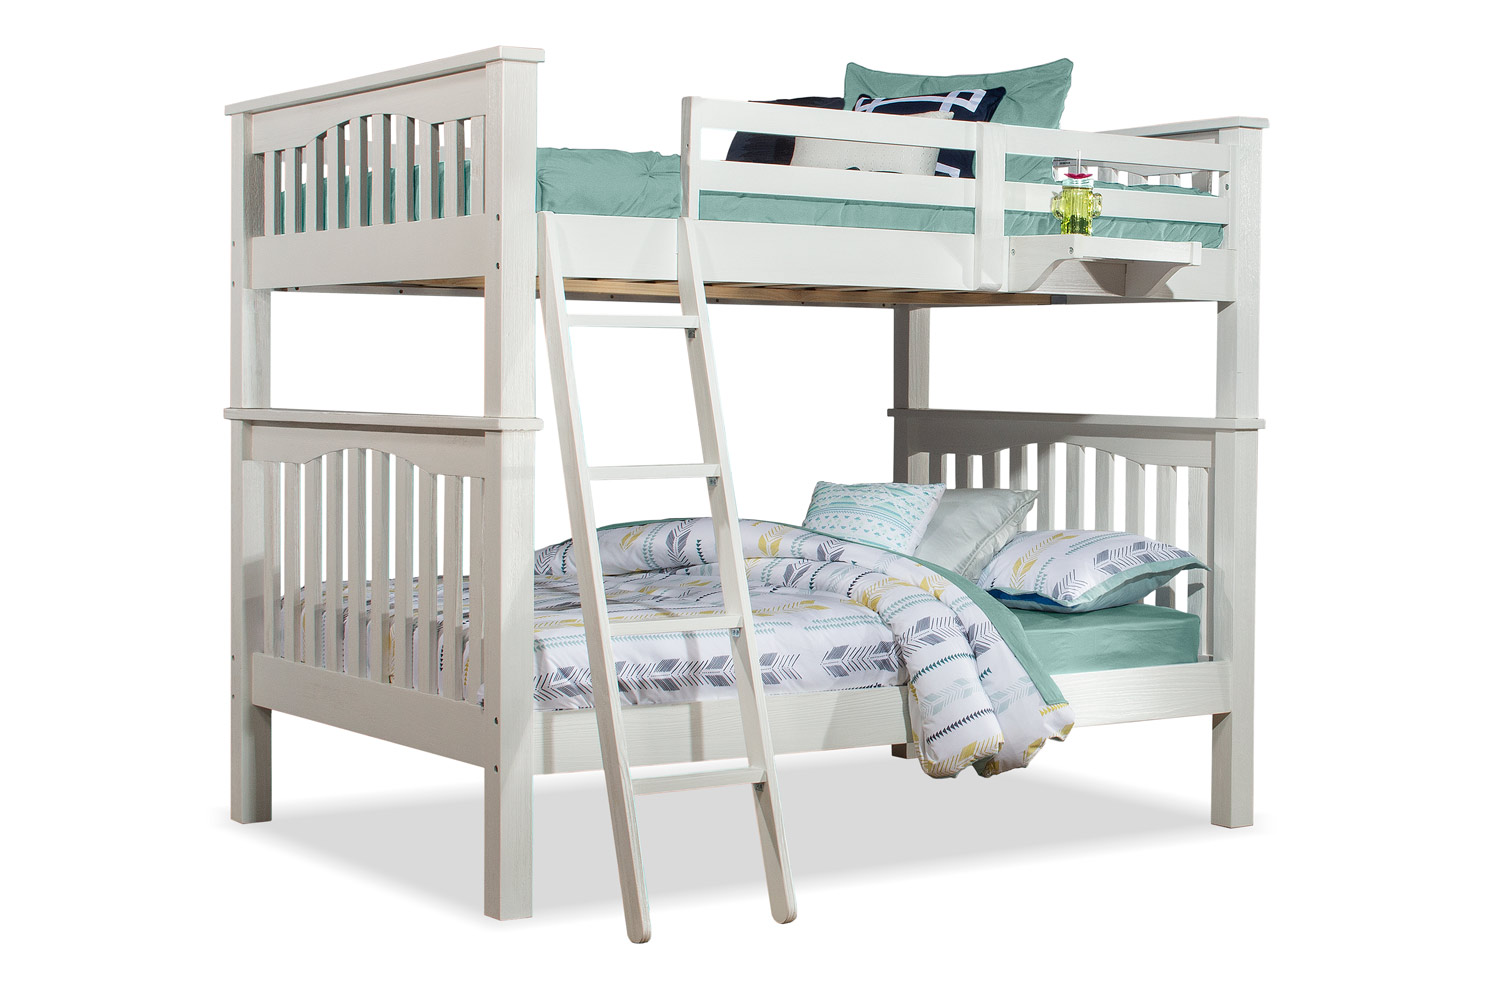 NE Kids Highlands Harper Full/Full Bunk Bed and Hanging Nightstand - White Finish